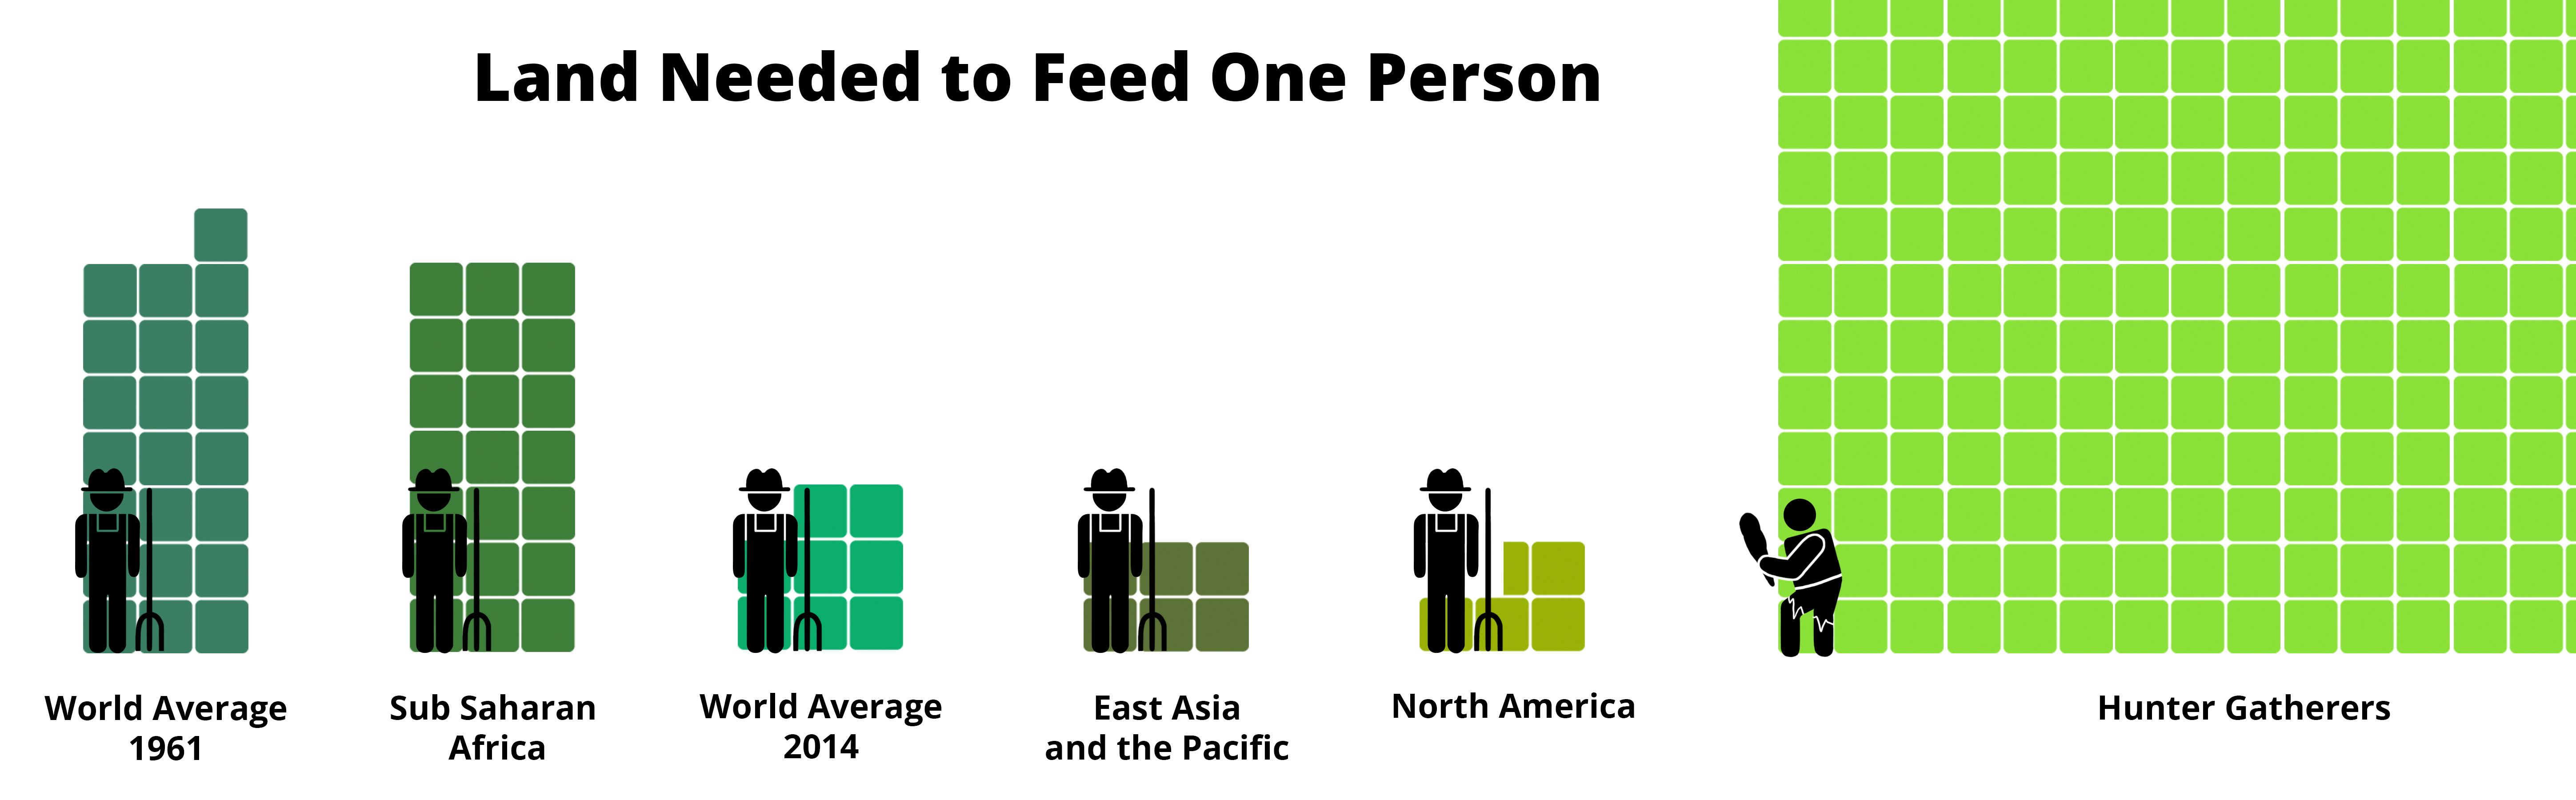 land infographic poverty project